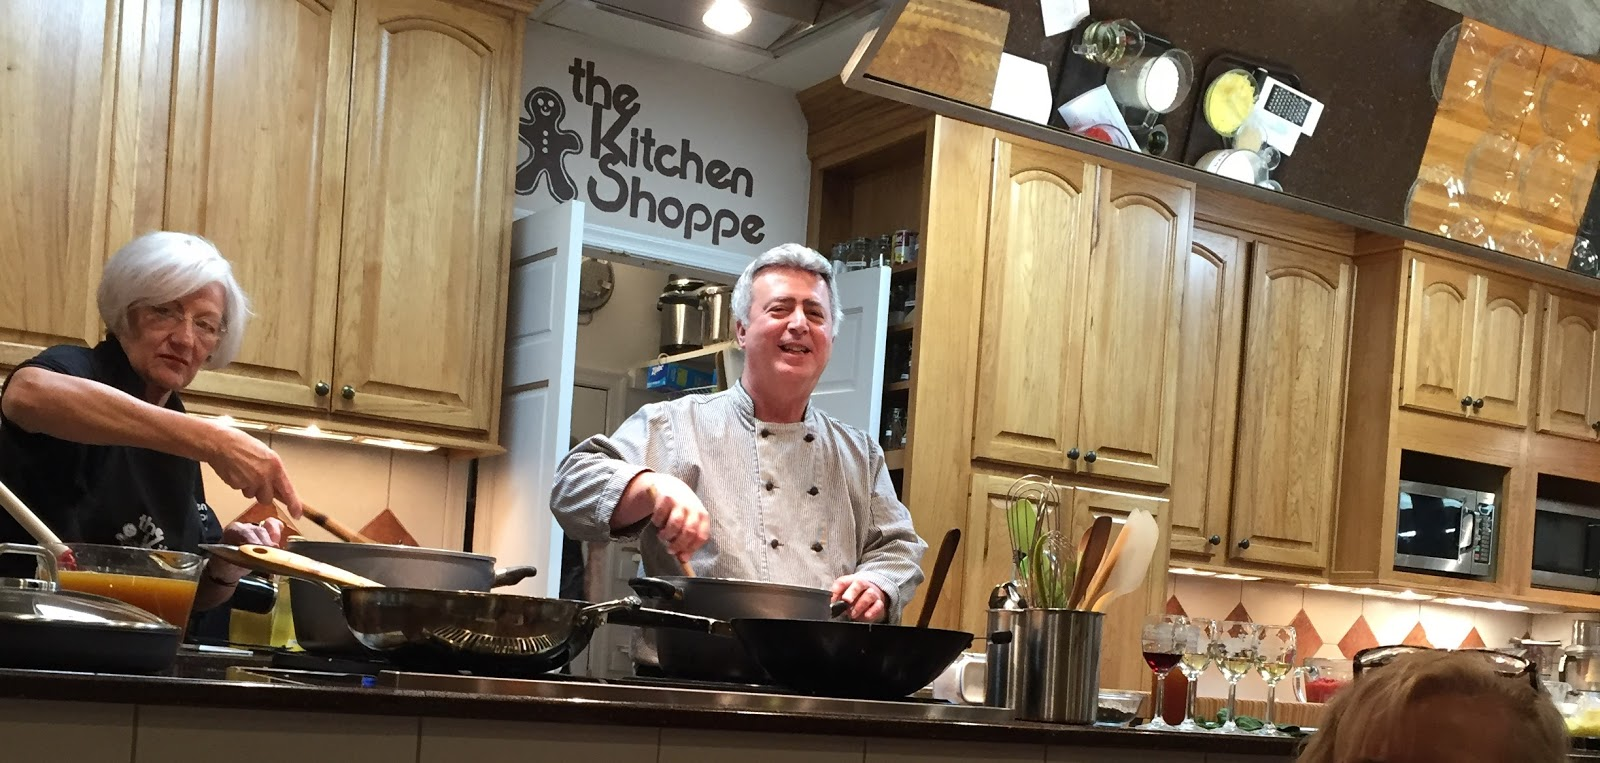 Muddy Puddle Musings: The Kitchen Shoppe Experience